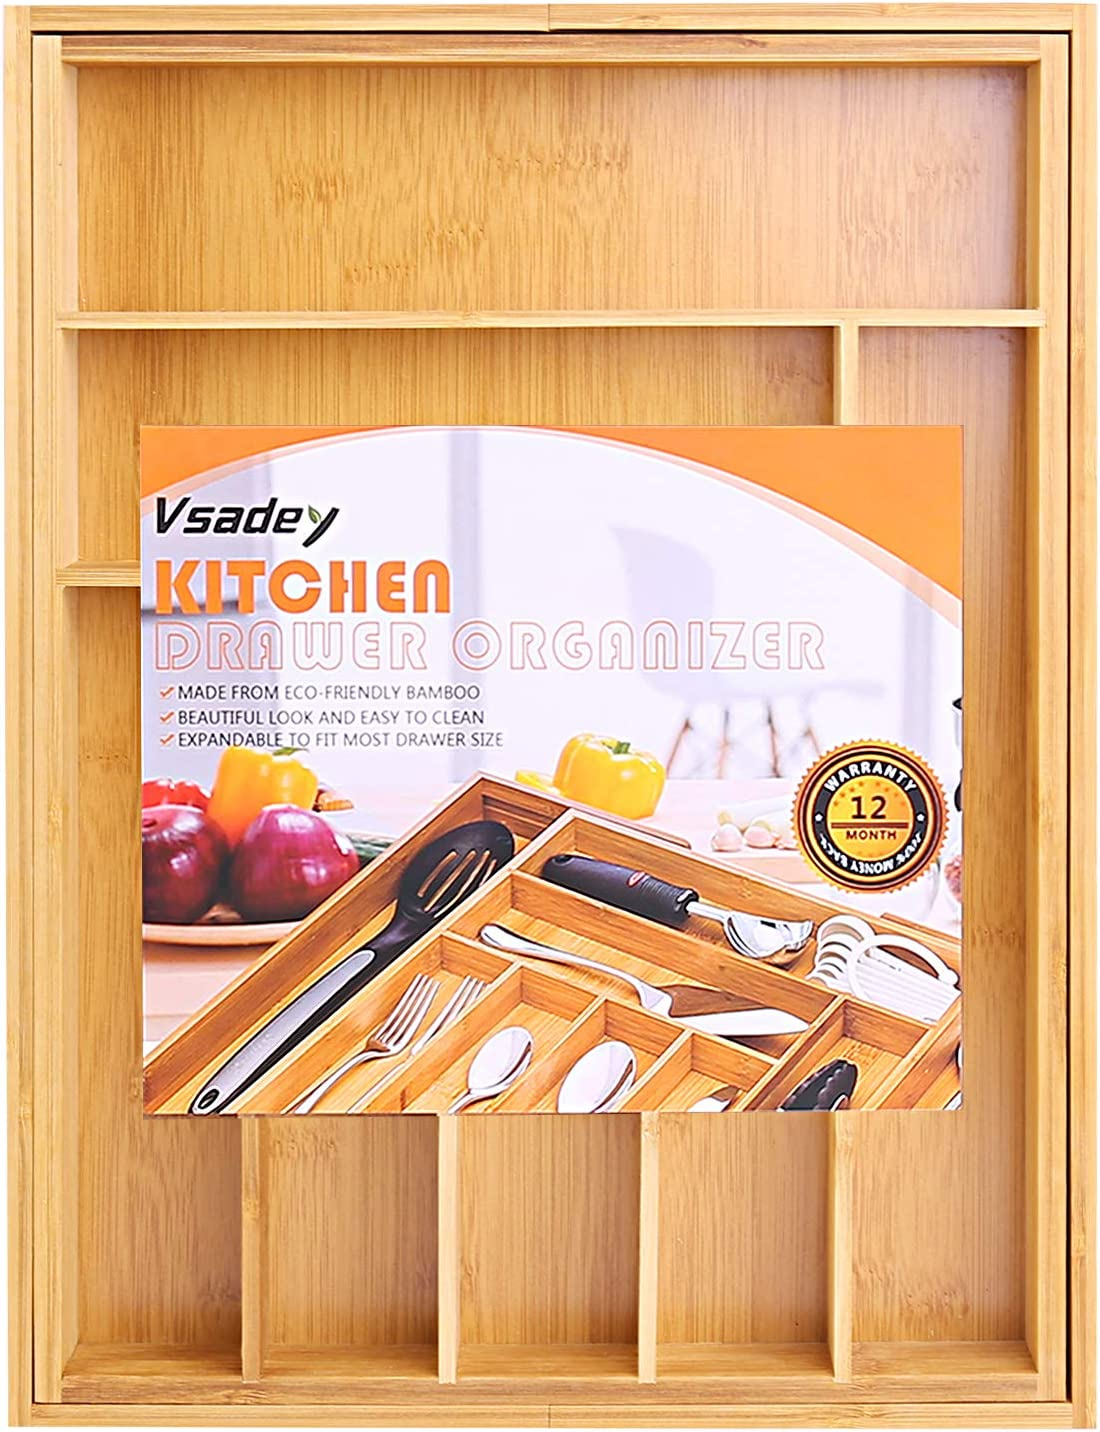 VSADEY Kitchen Drawer Organizer Bamboo Expandable Utensil Silverware Organizer Flatware and Silverware 9 Compartments Compact Cutlery Tray Organizer Holder for Kitchen Utensils